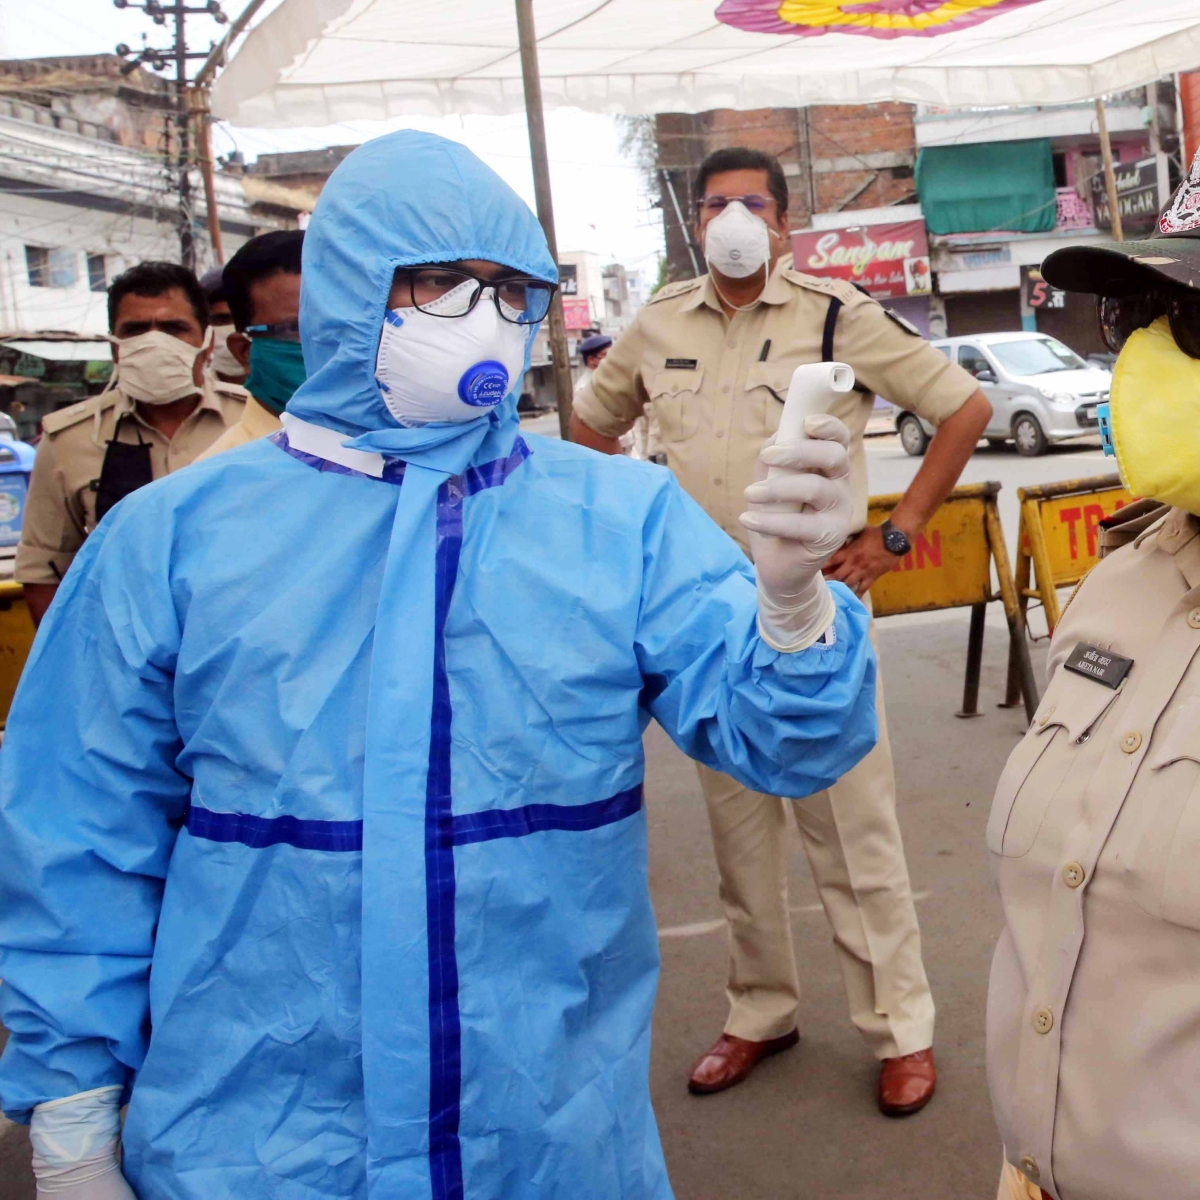 Coronavirus in Maharashtra: COVID-19 hits state police; 18 dead, 1,809 infected